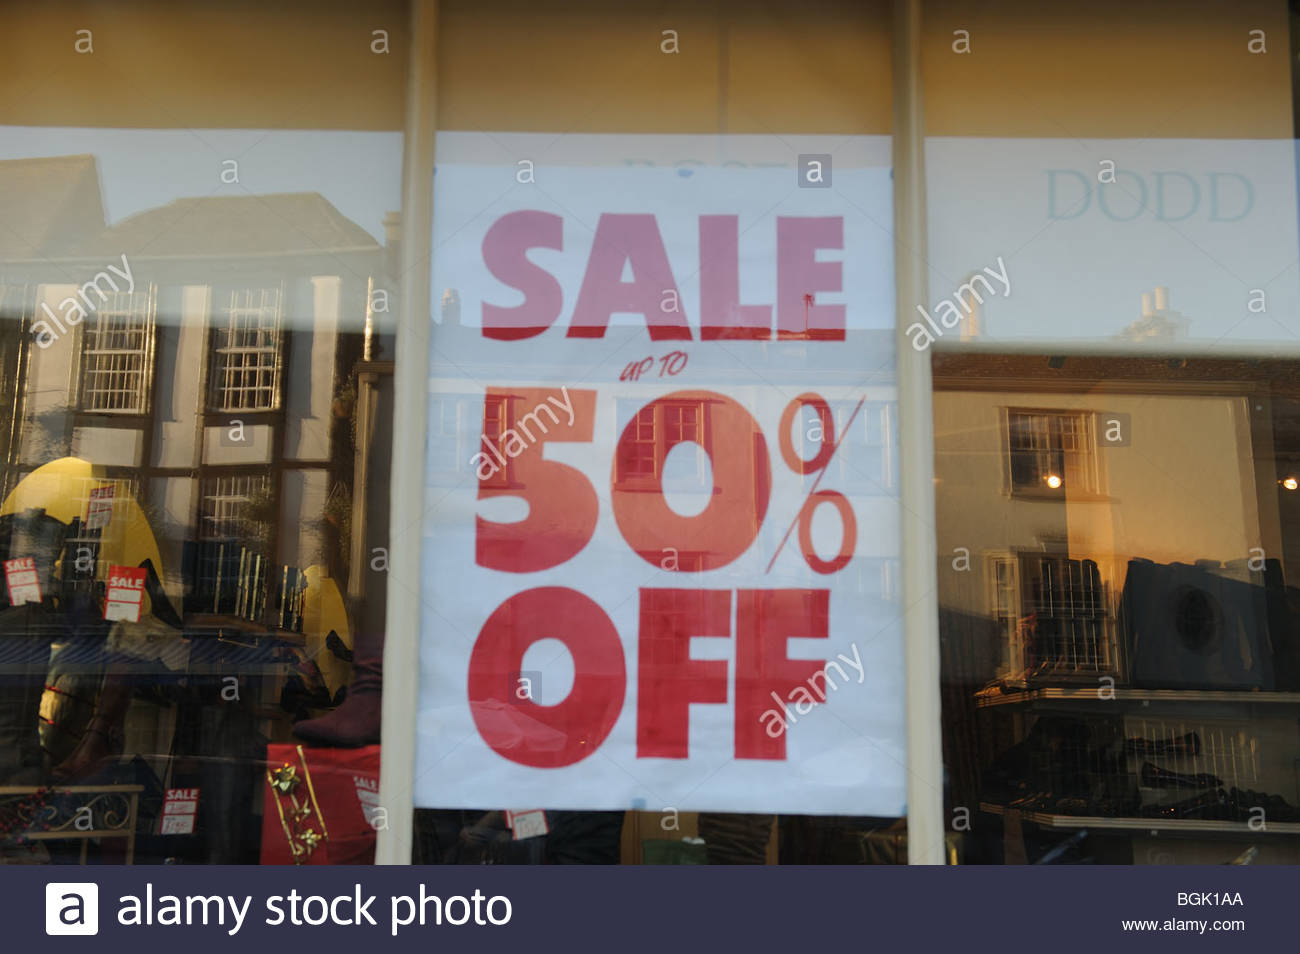 Sale sign flag room shop shops 50 25 percent off january for Living room 50 off january